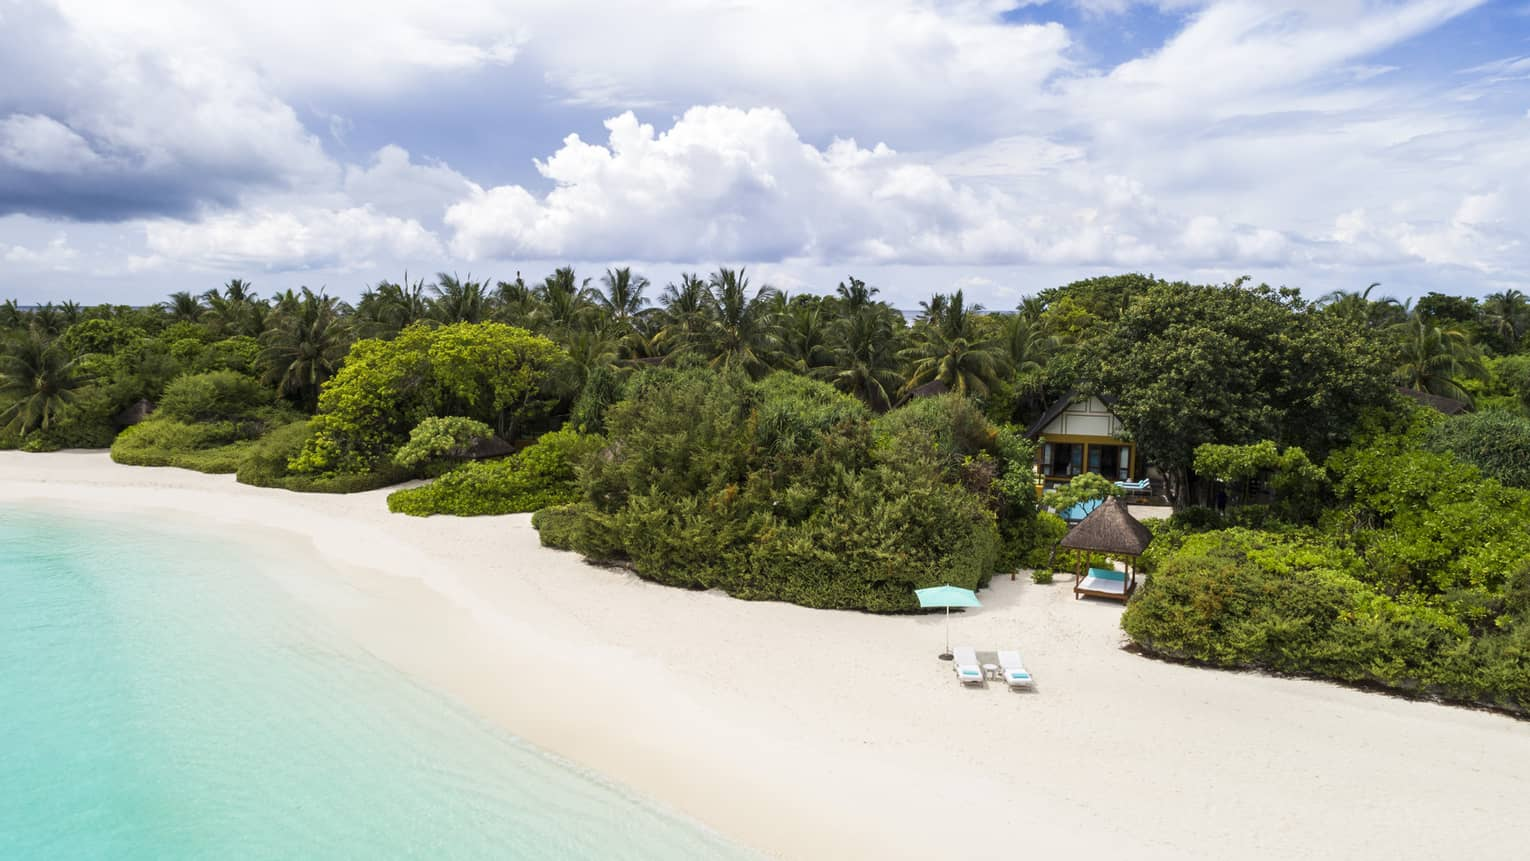 Quiet white-sand beach in the Maldives with turquoise water and lush green trees inland